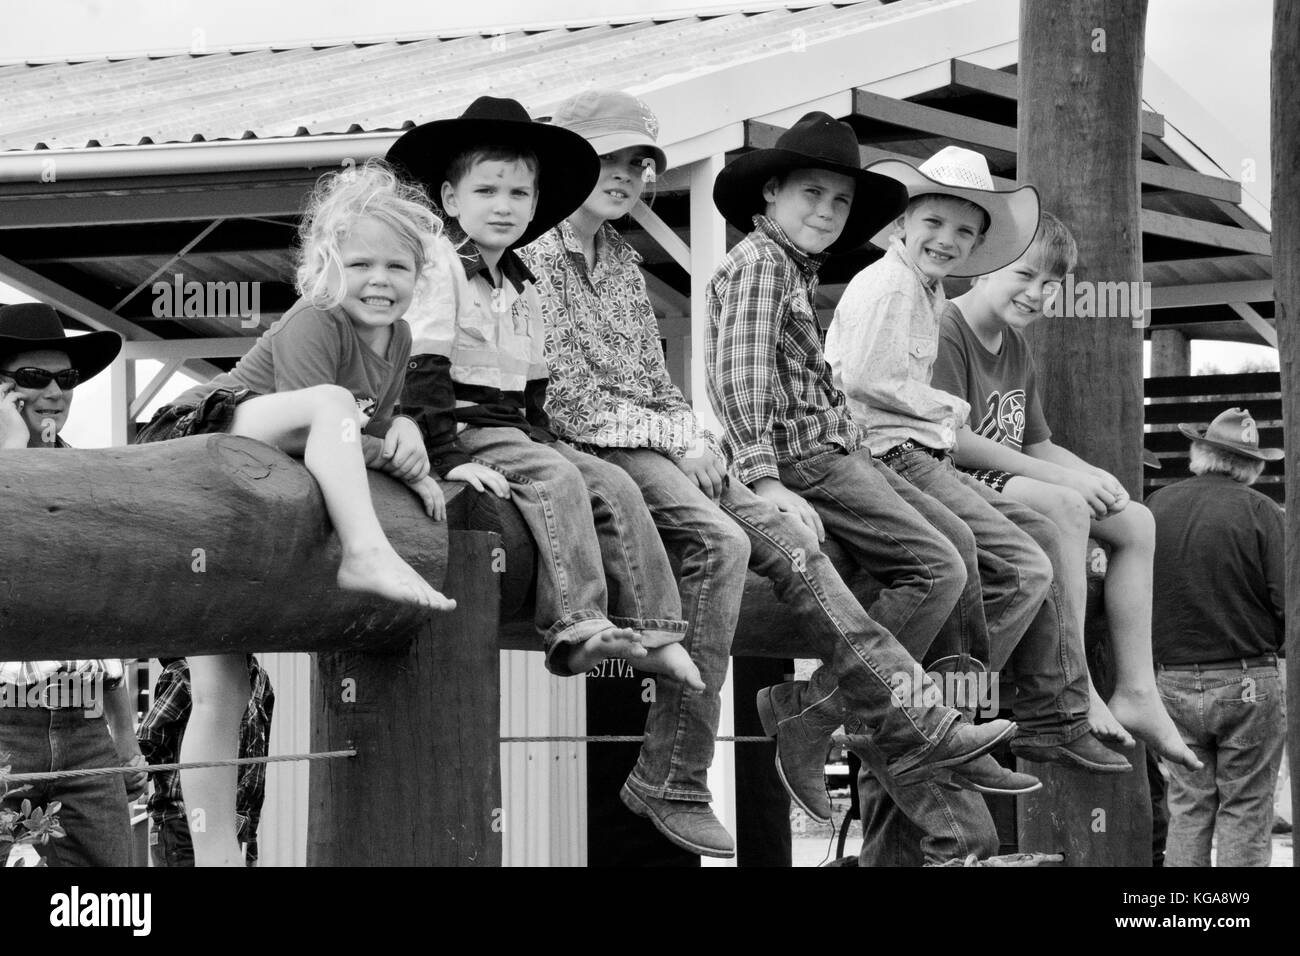 AUSTRALIAN COUNTRY KIDS SITTING ON FENCE. - Stock Image